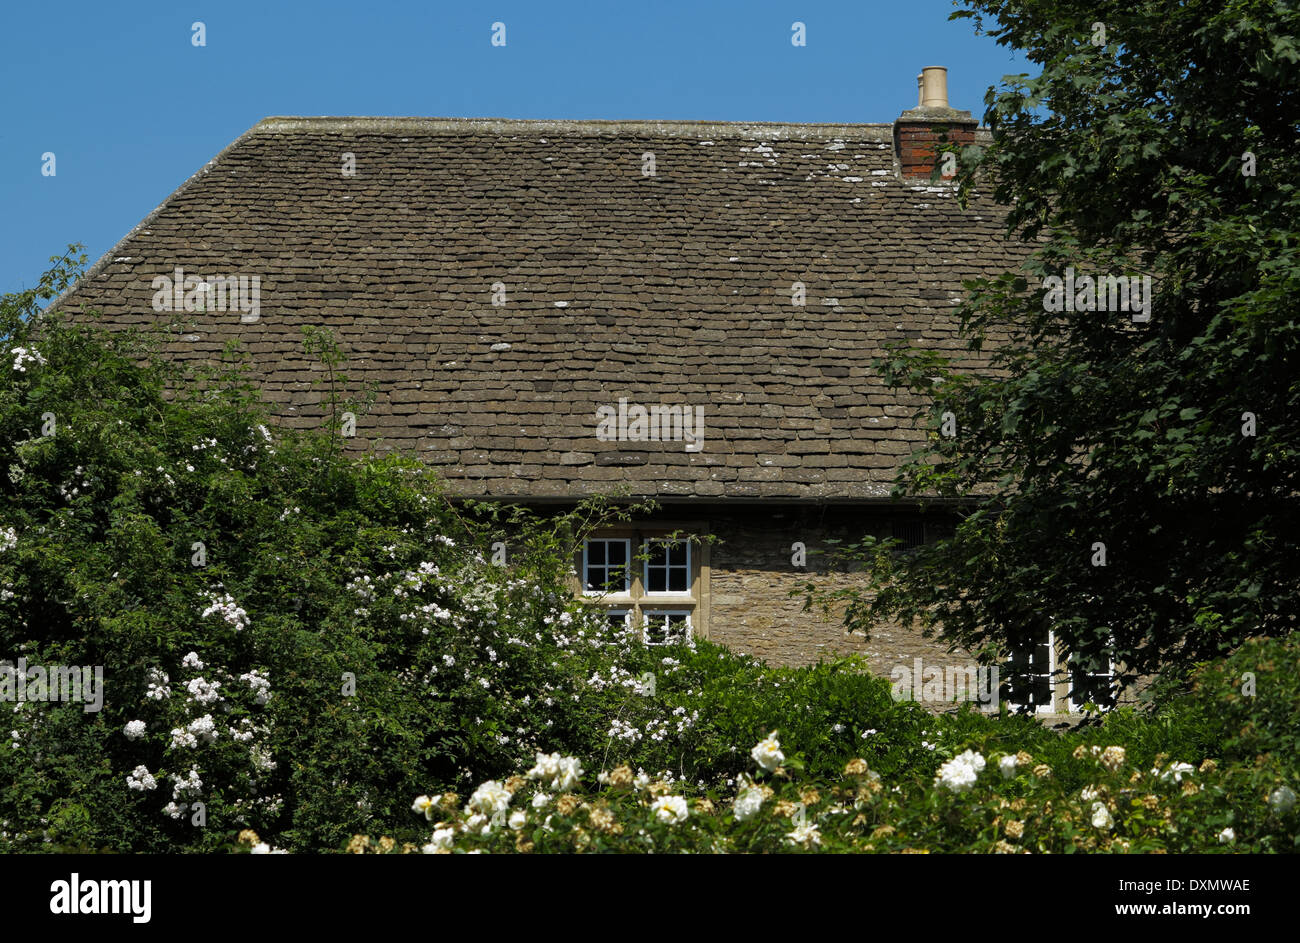 Corsham Wiltshire England UK Stock Photo